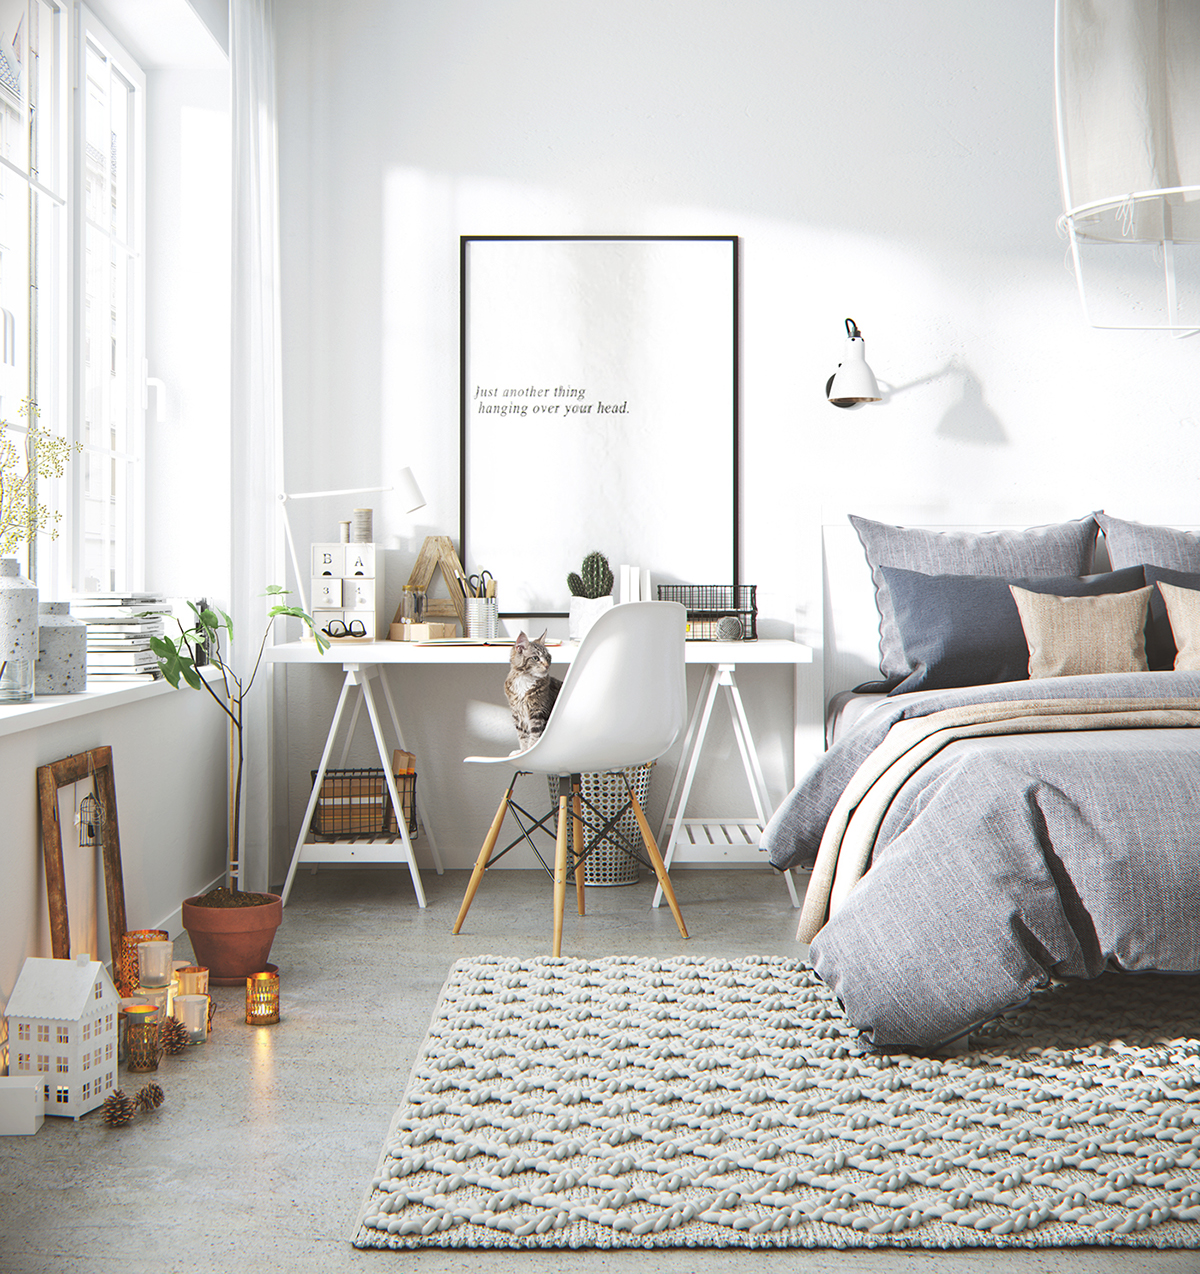 3D Scandinavian Design By ATng